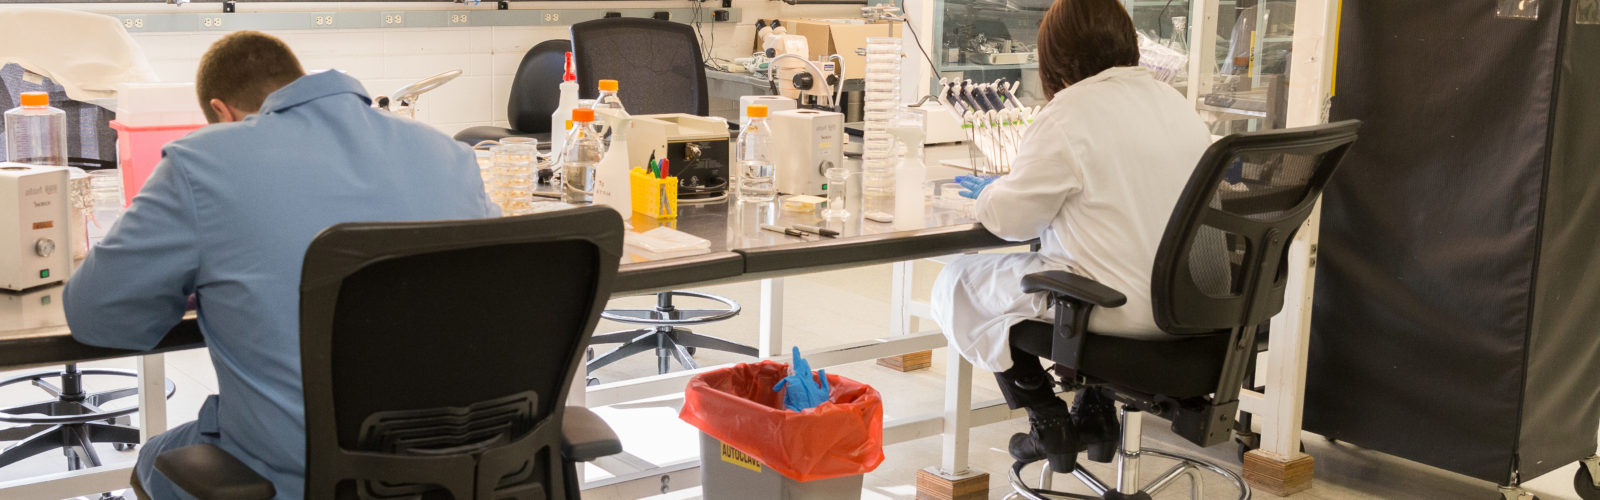 Two plant researchers working in a lab